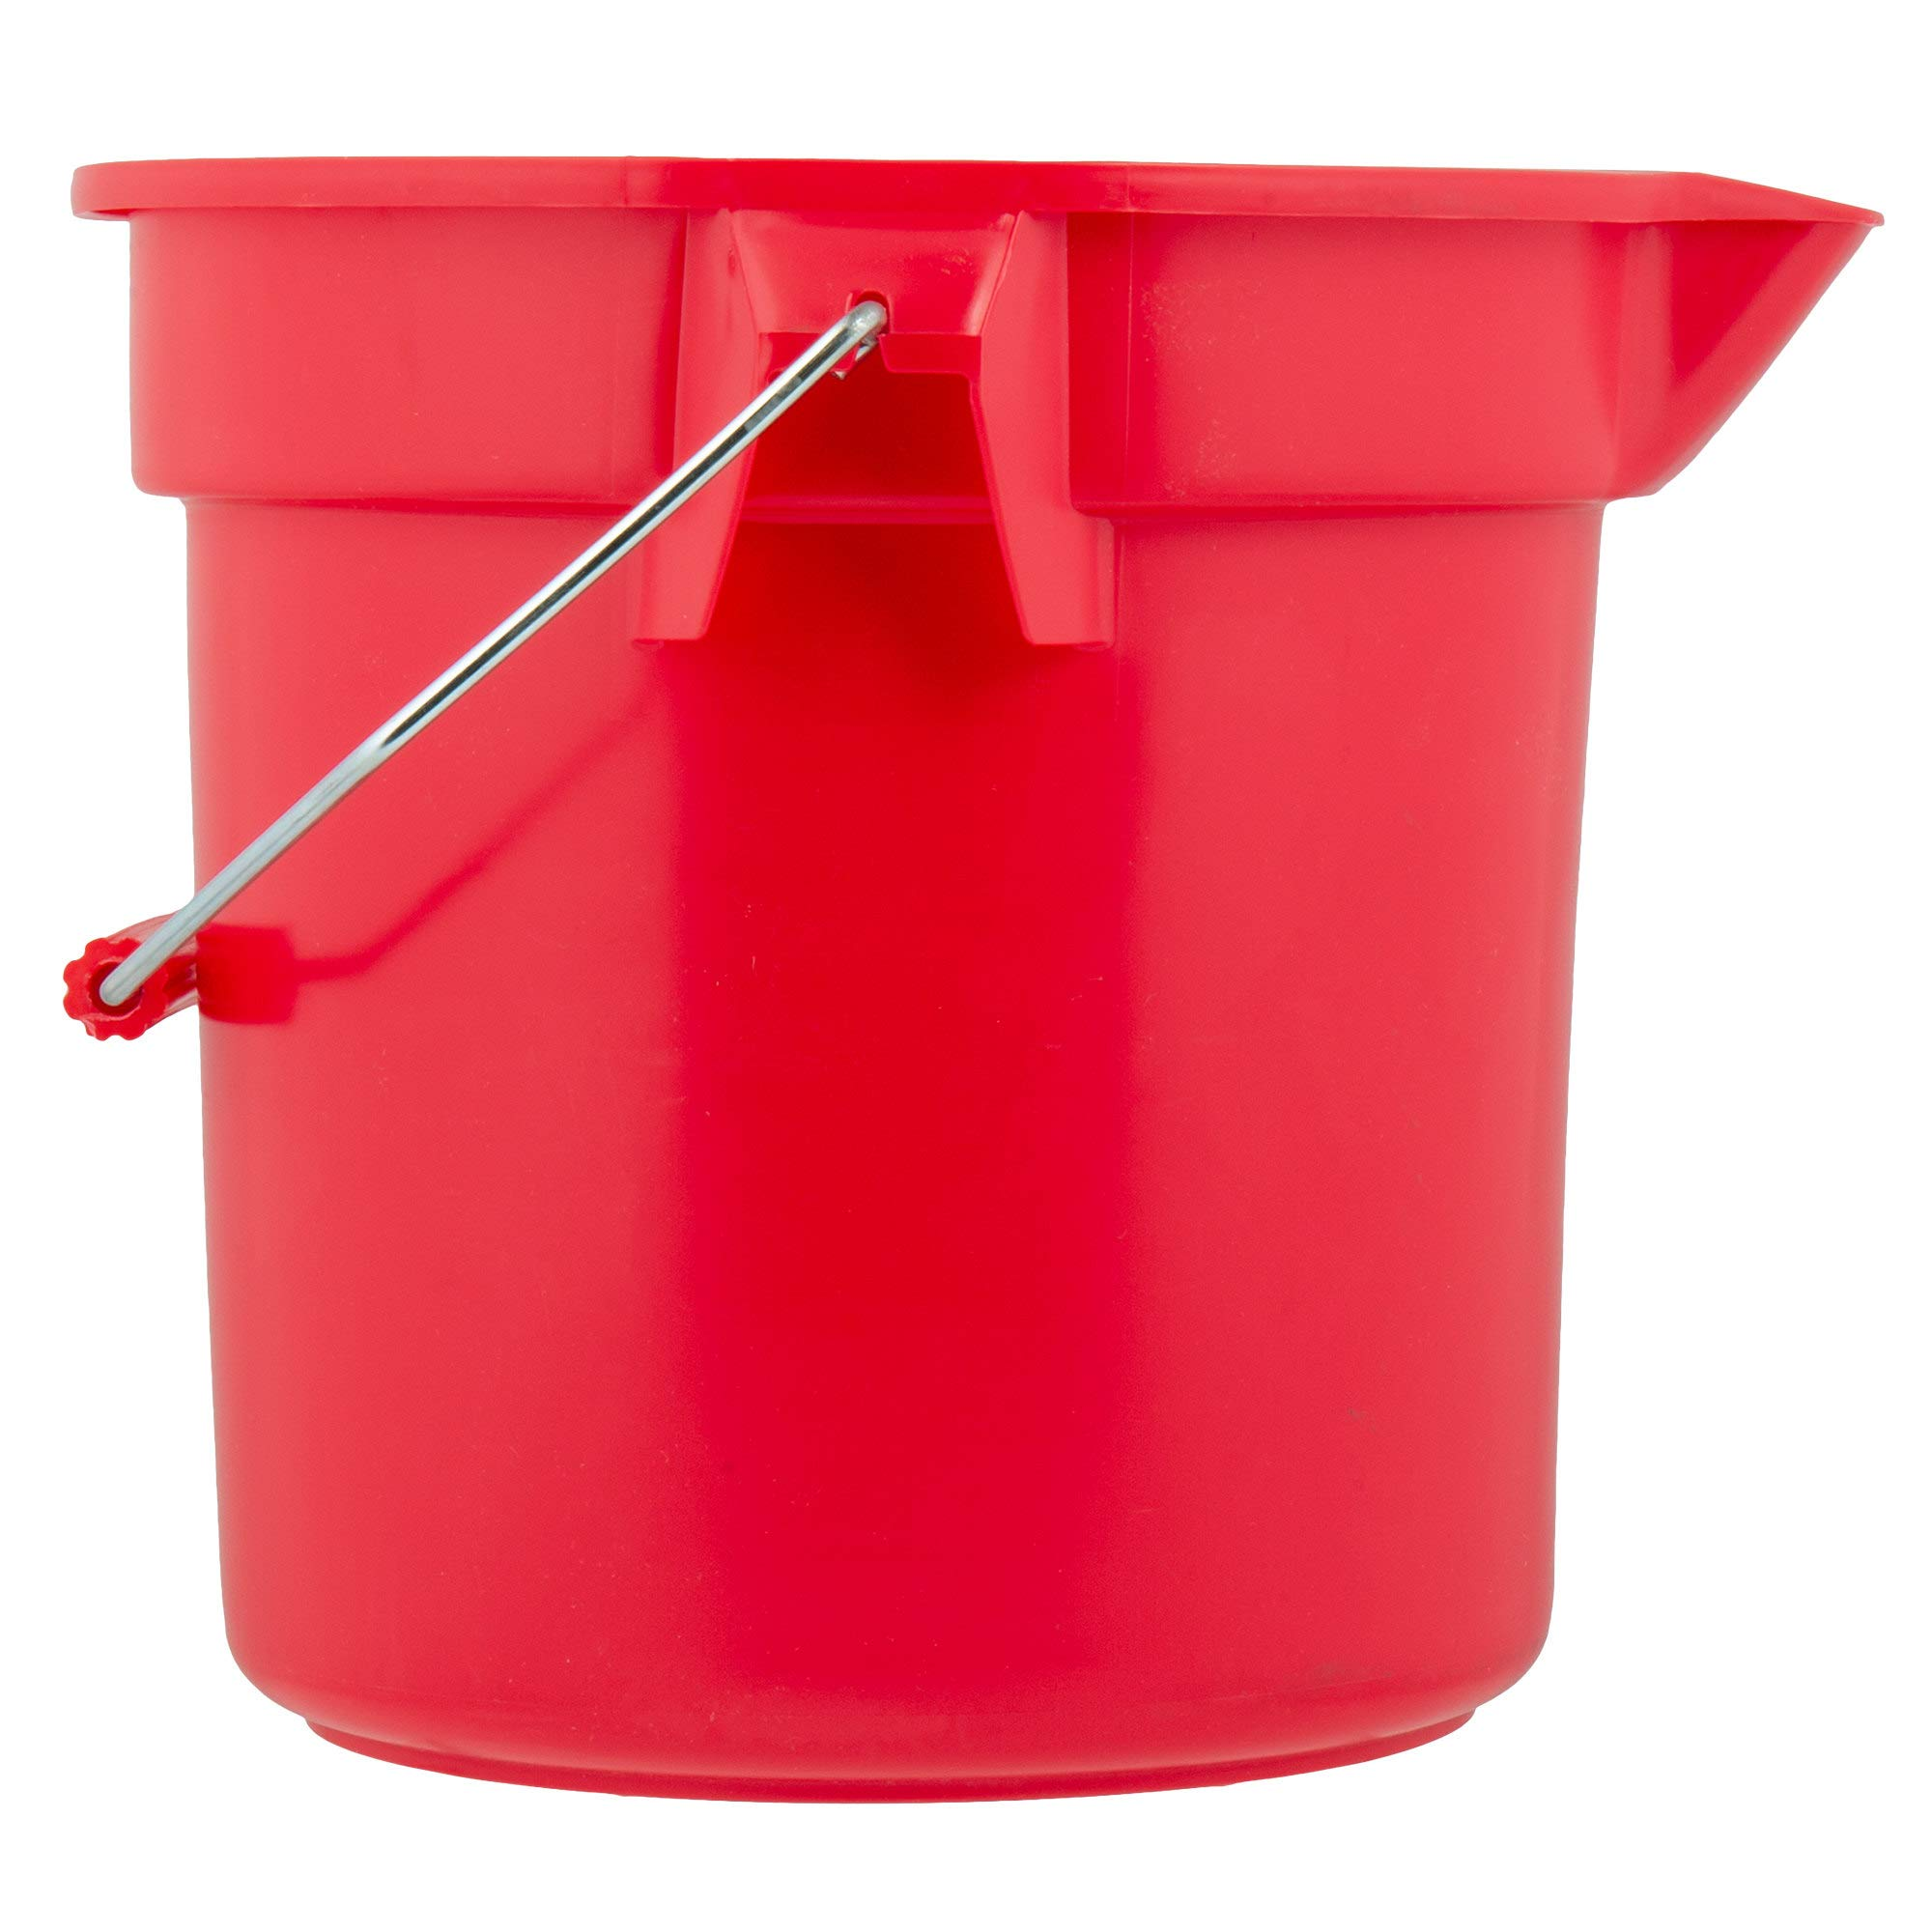 Rubbermaid Commercial Products 2.5 Gallon Brute Heavy-Duty, Corrosive-Resistant, Round Bucket, Red FG296300RED